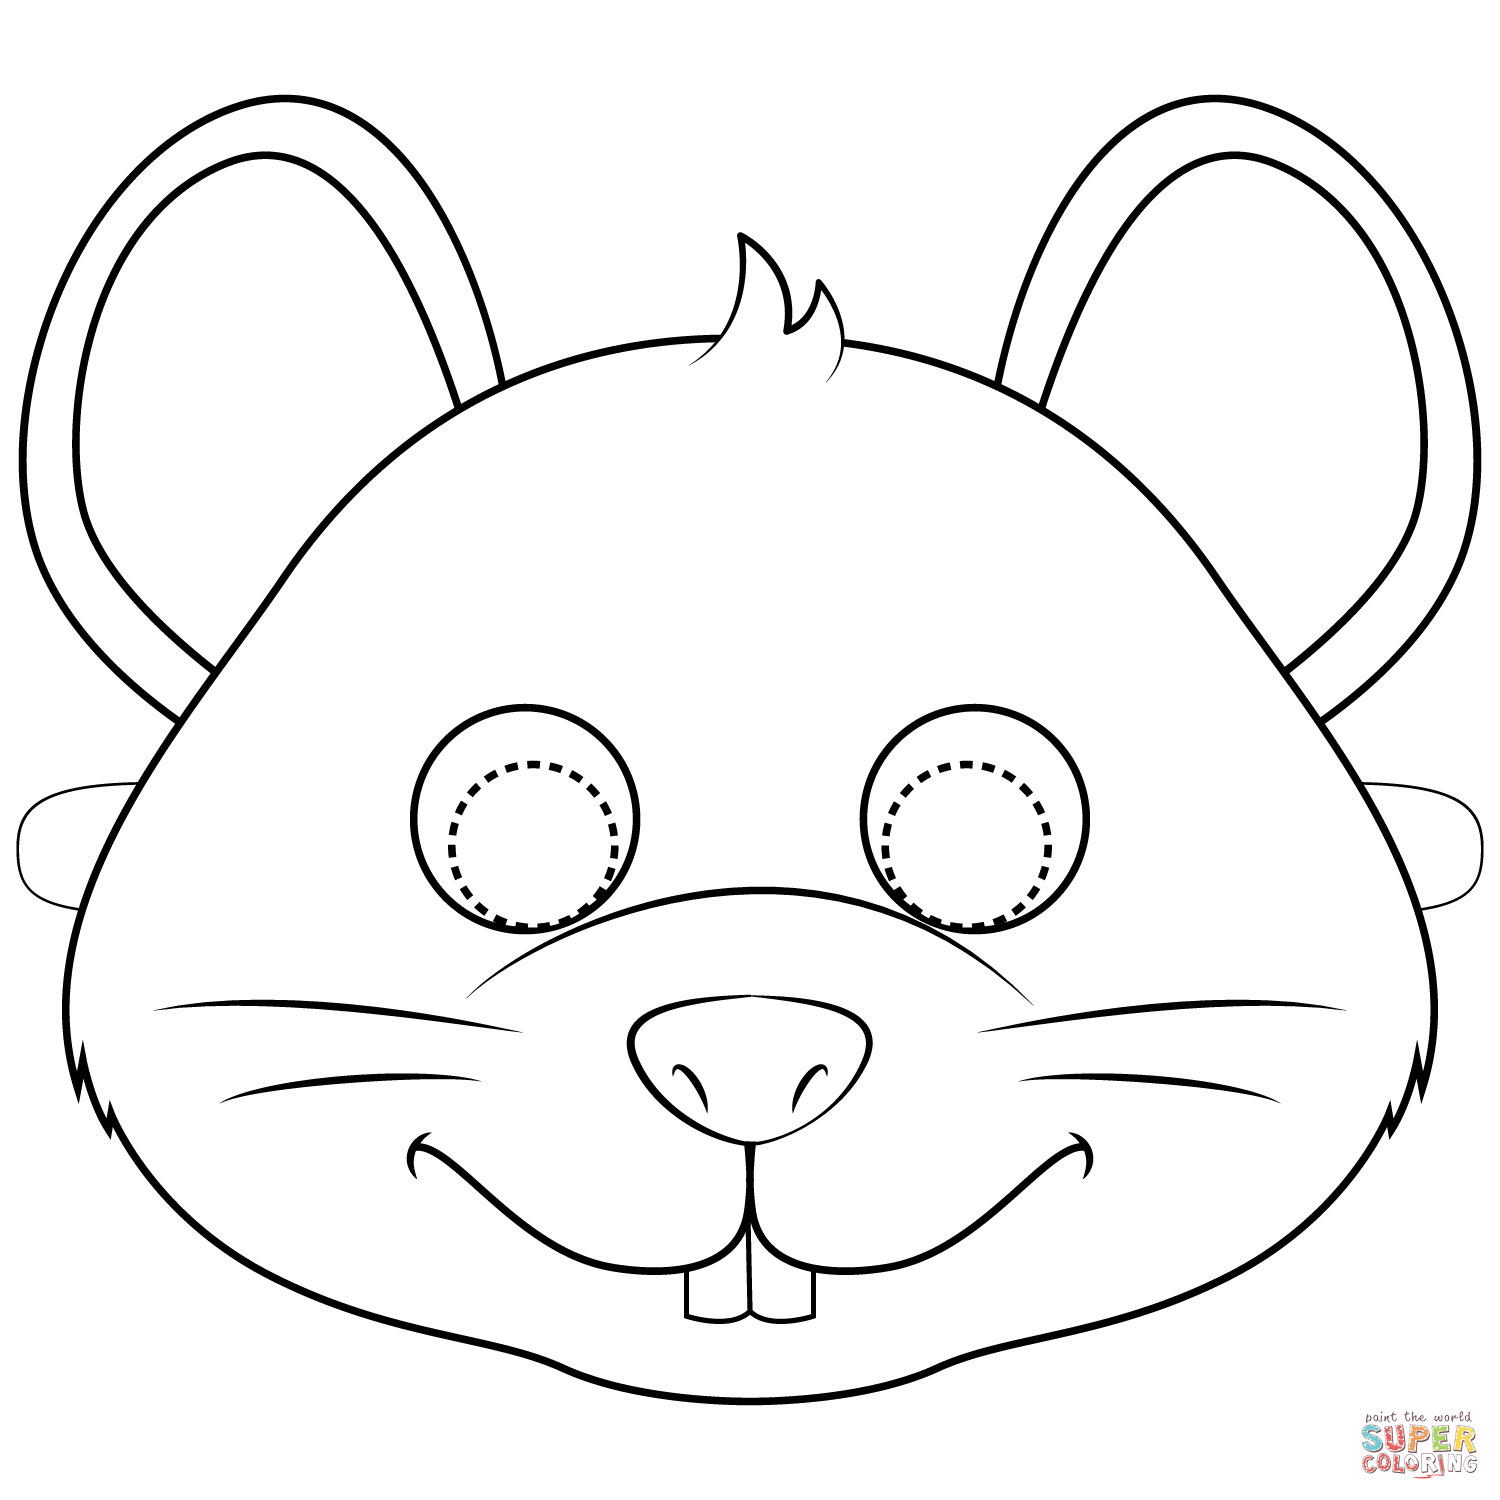 Mouse Mask Coloring Page Free Printable Coloring Pages Mouse Mask Coloring Pages Animal Mask Templates